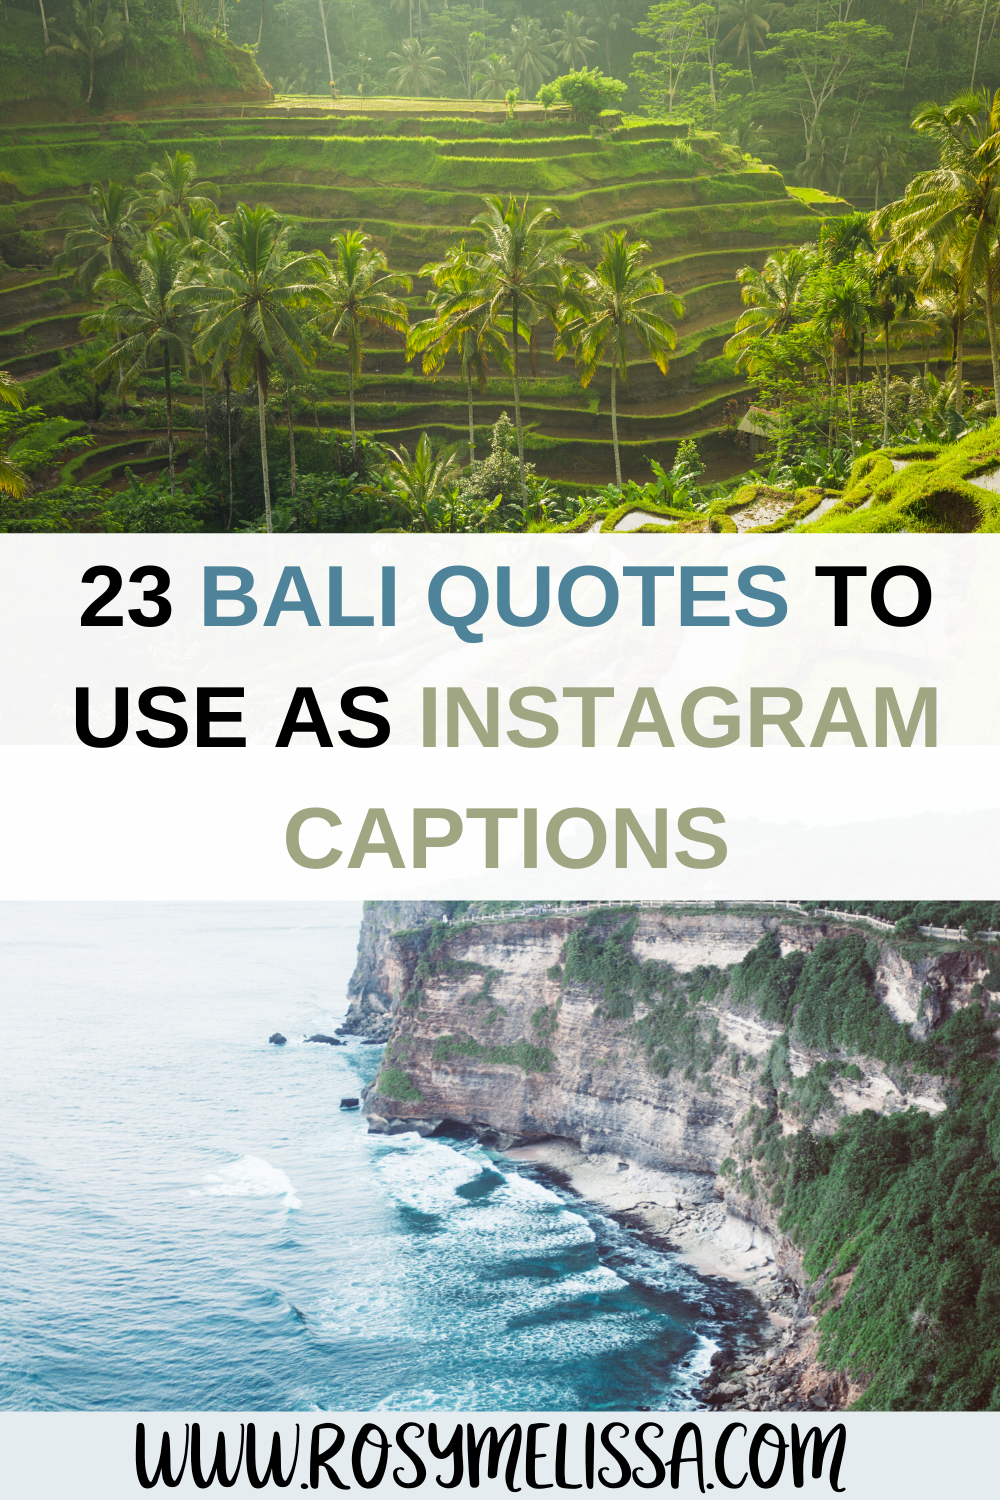 23 Beautiful Bali Quotes, Instagram Captions and Puns in 2020